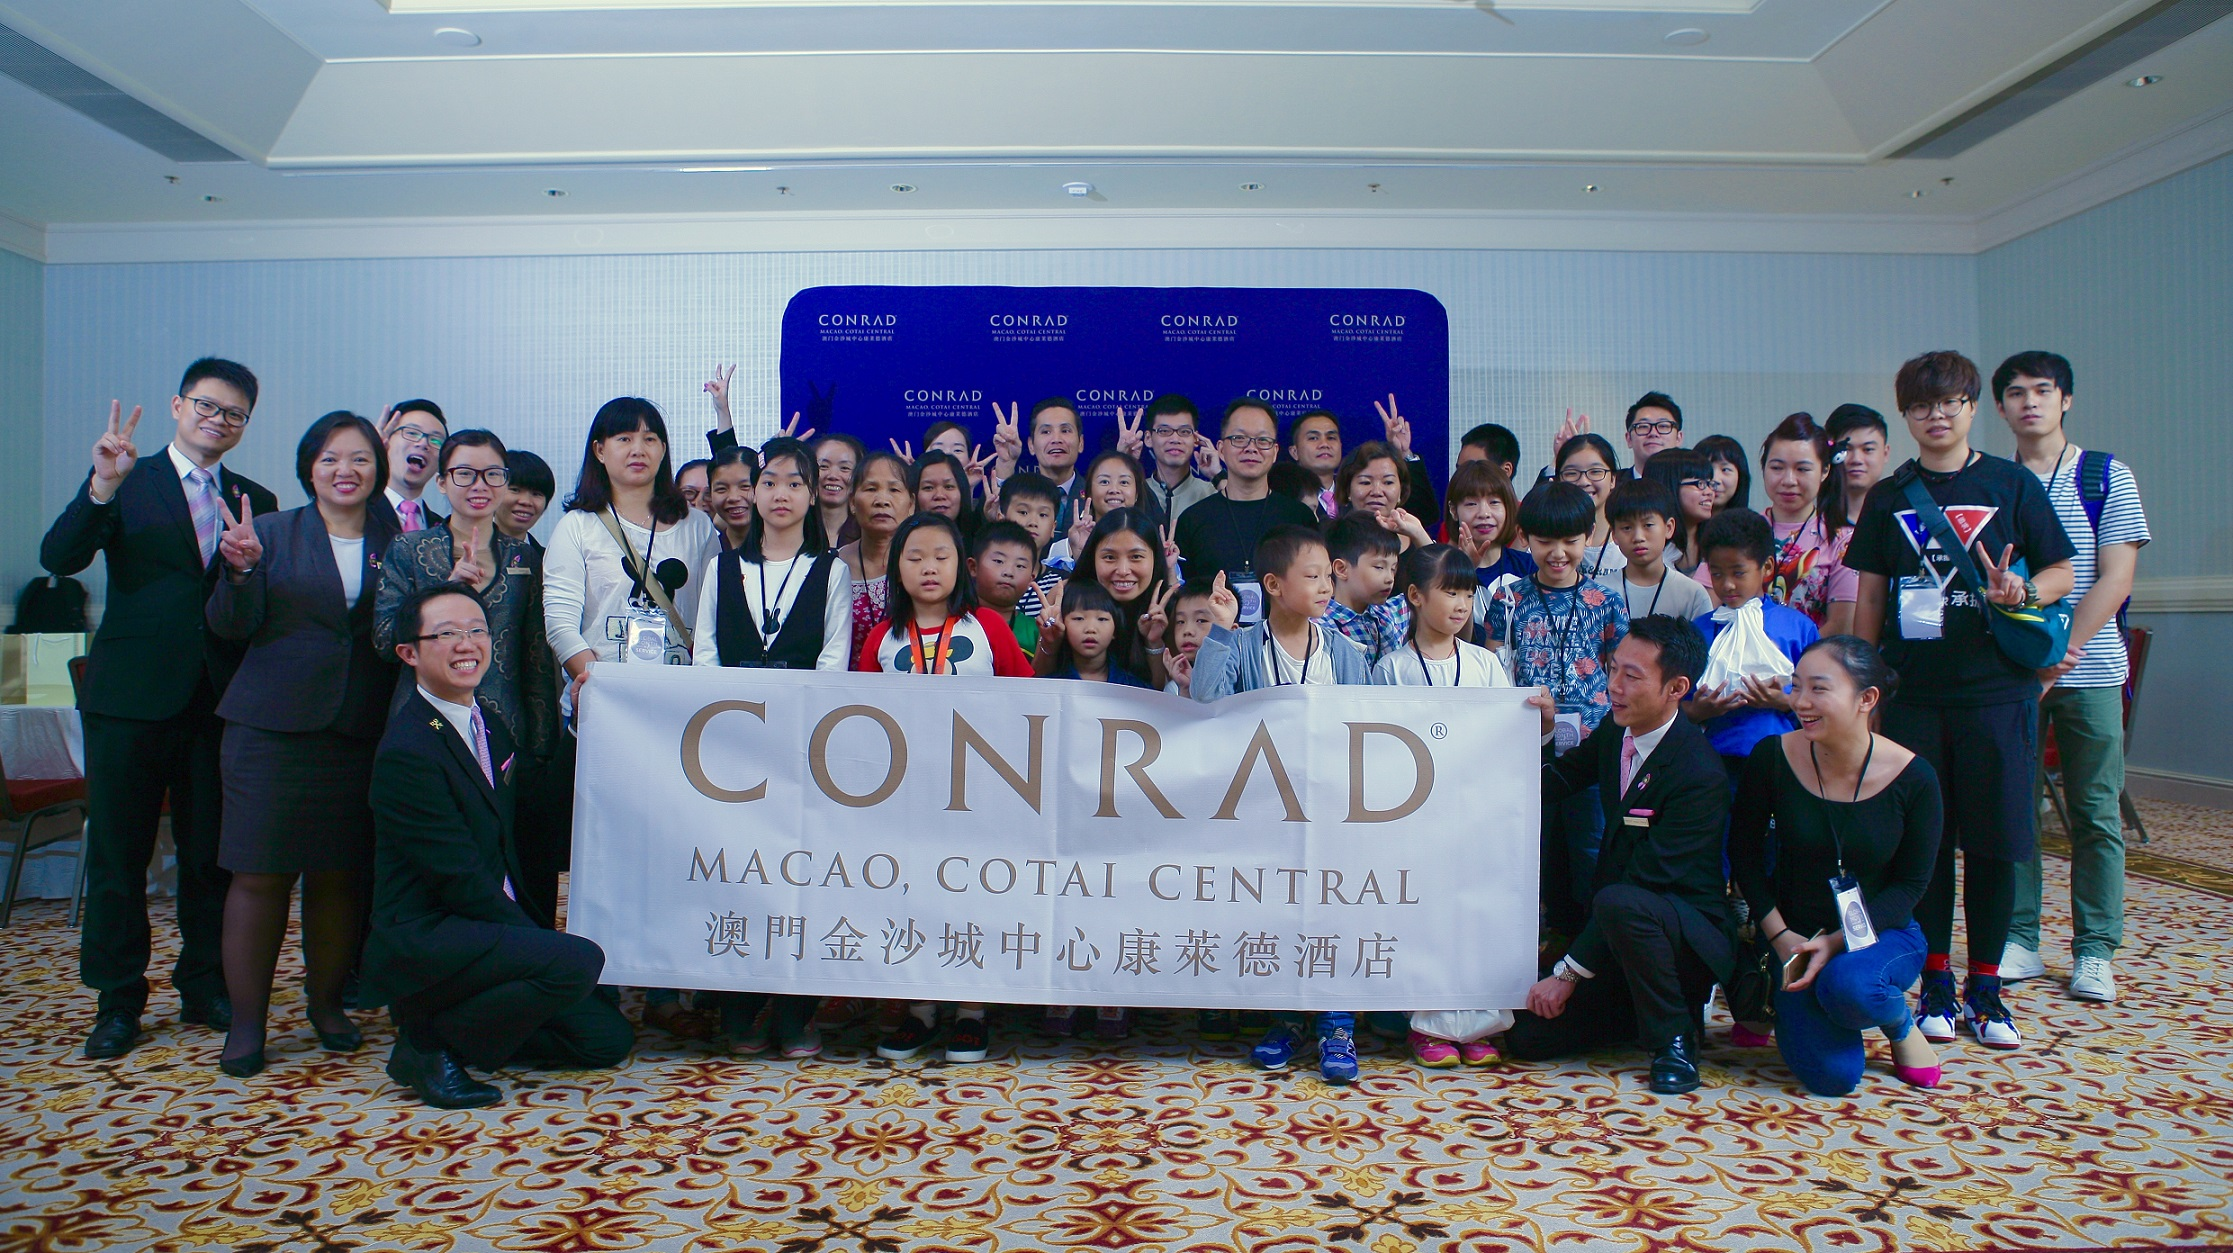 Conrad Macao Celebrates Hiltons Annual Global Month of Service